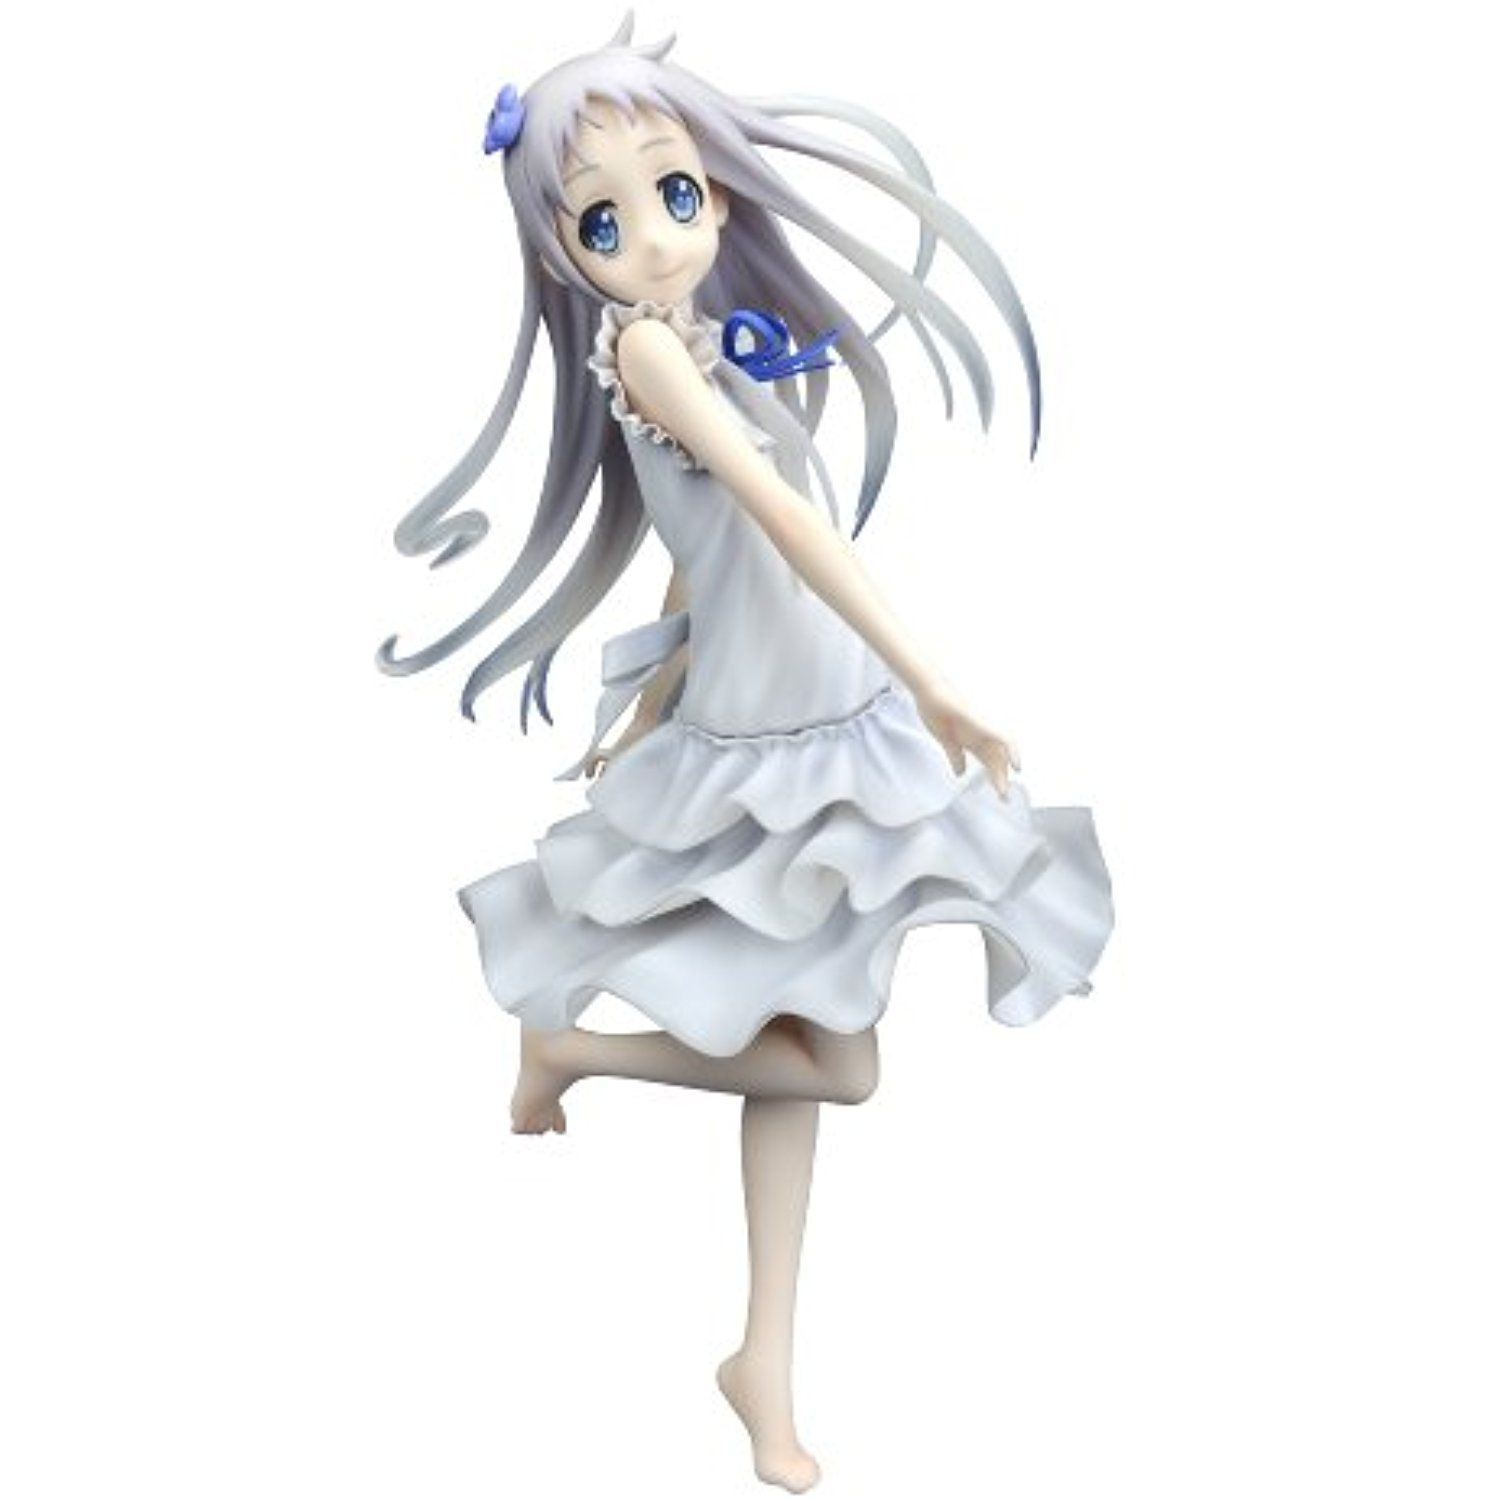 QuesQ Anohana The Flower We Saw That Day Menma PVC Figure Scale More Info Could Be Found At Image Url